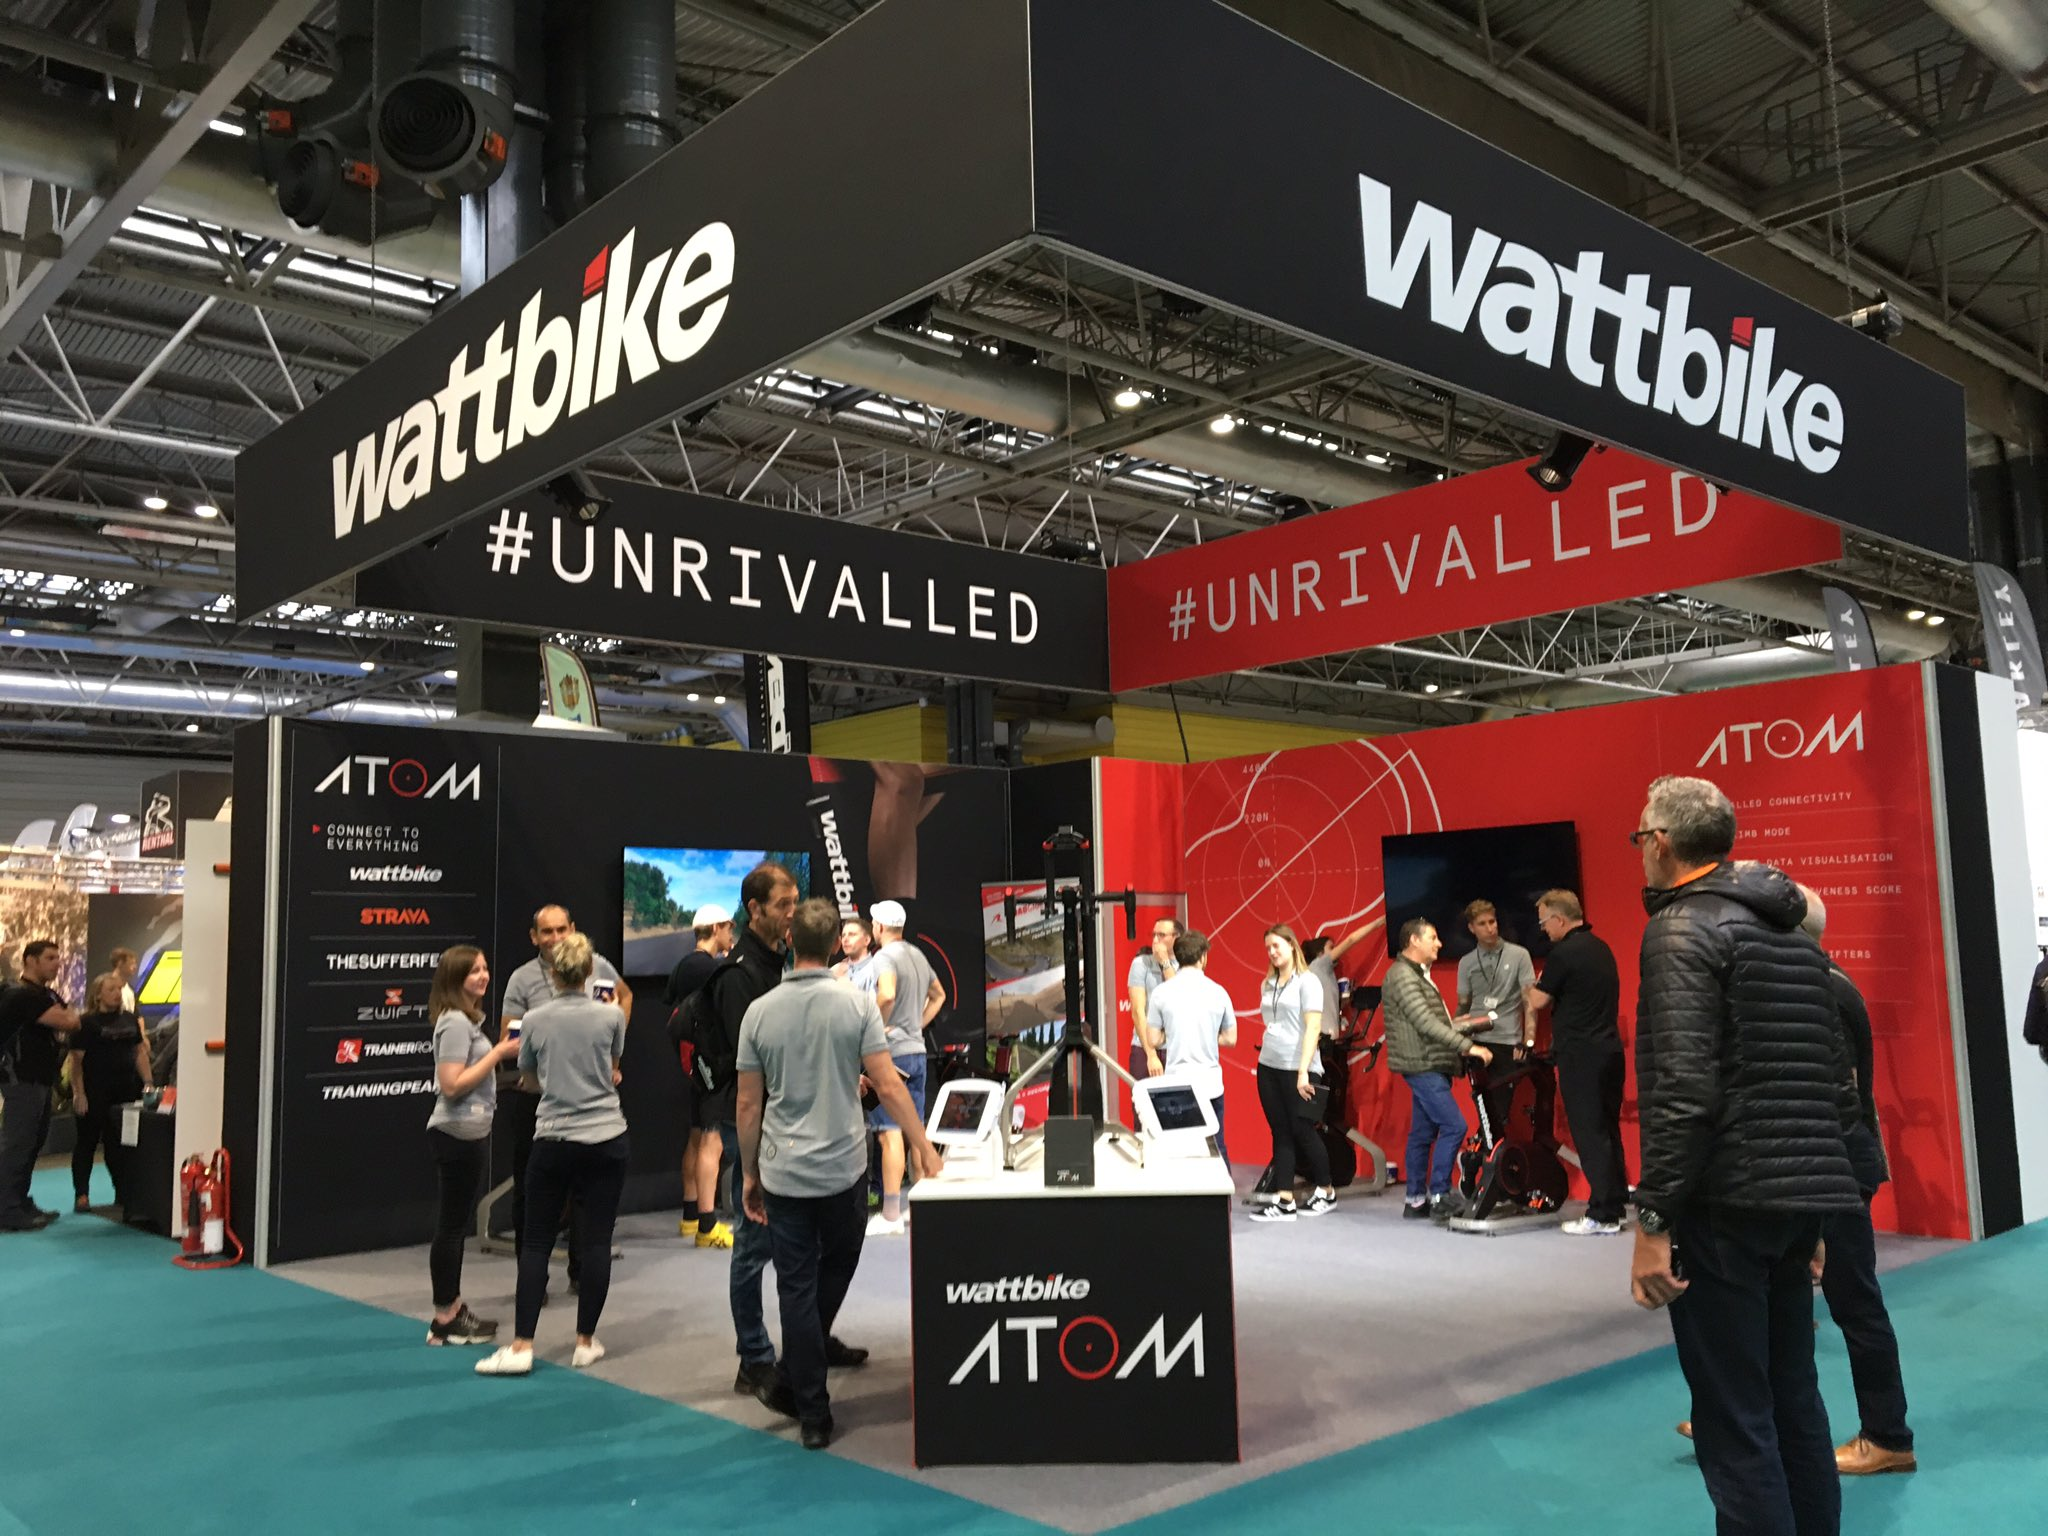 RT @wattbike: We're up and running at the @CycleShow - visit stand D47 to experience the #Unrivalled Wattbike Atom! https://t.co/UxCyVlZUFz